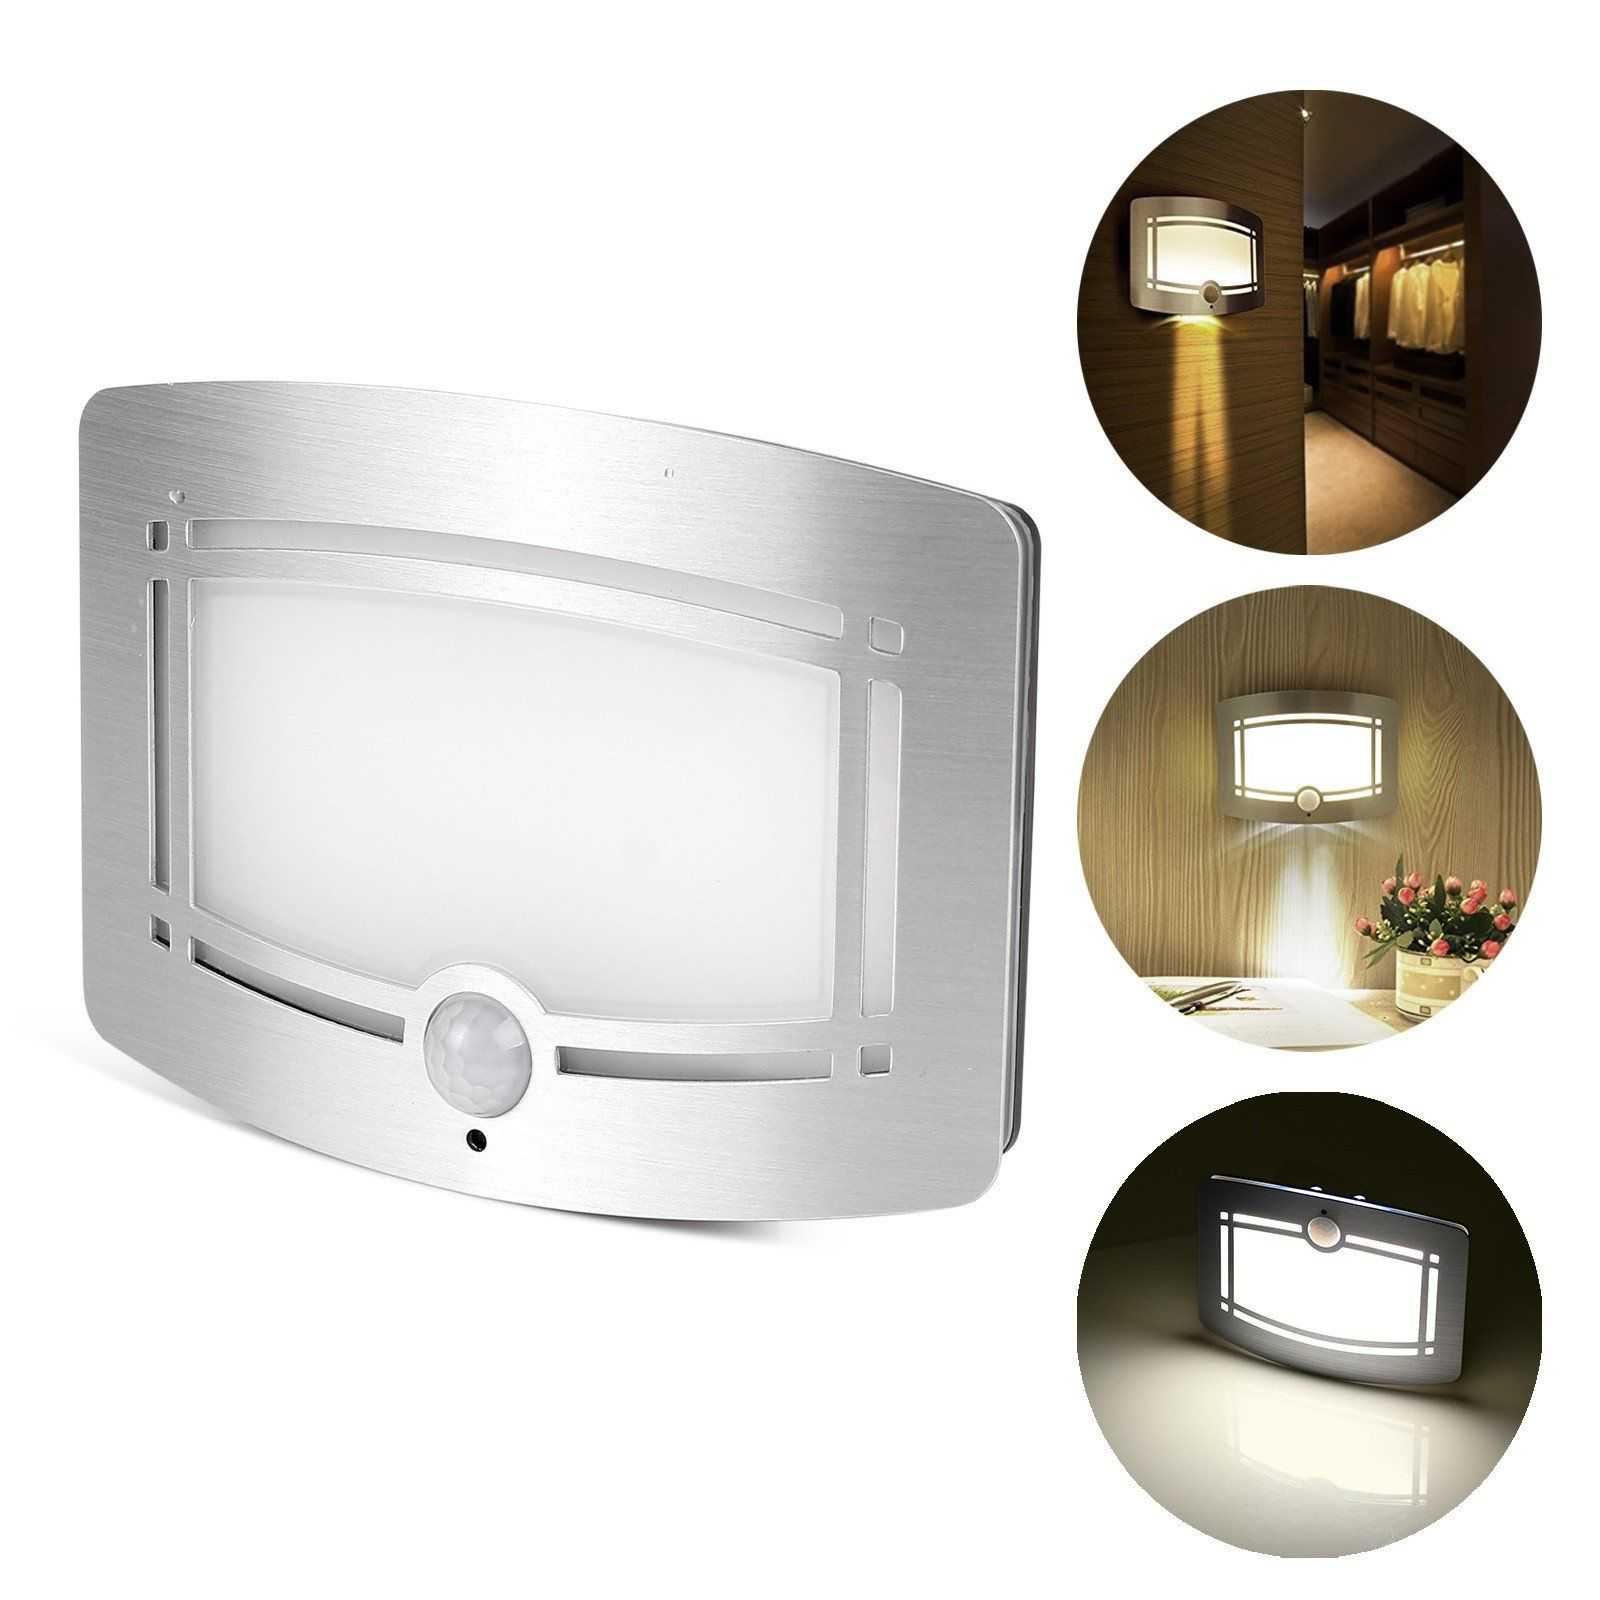 Motion Sensor Activated Led Wall Sconce Battery Operated Wireless Night Light Auto On Off For Hallway Wireless Night Light Sensor Night Lights Led Wall Lights